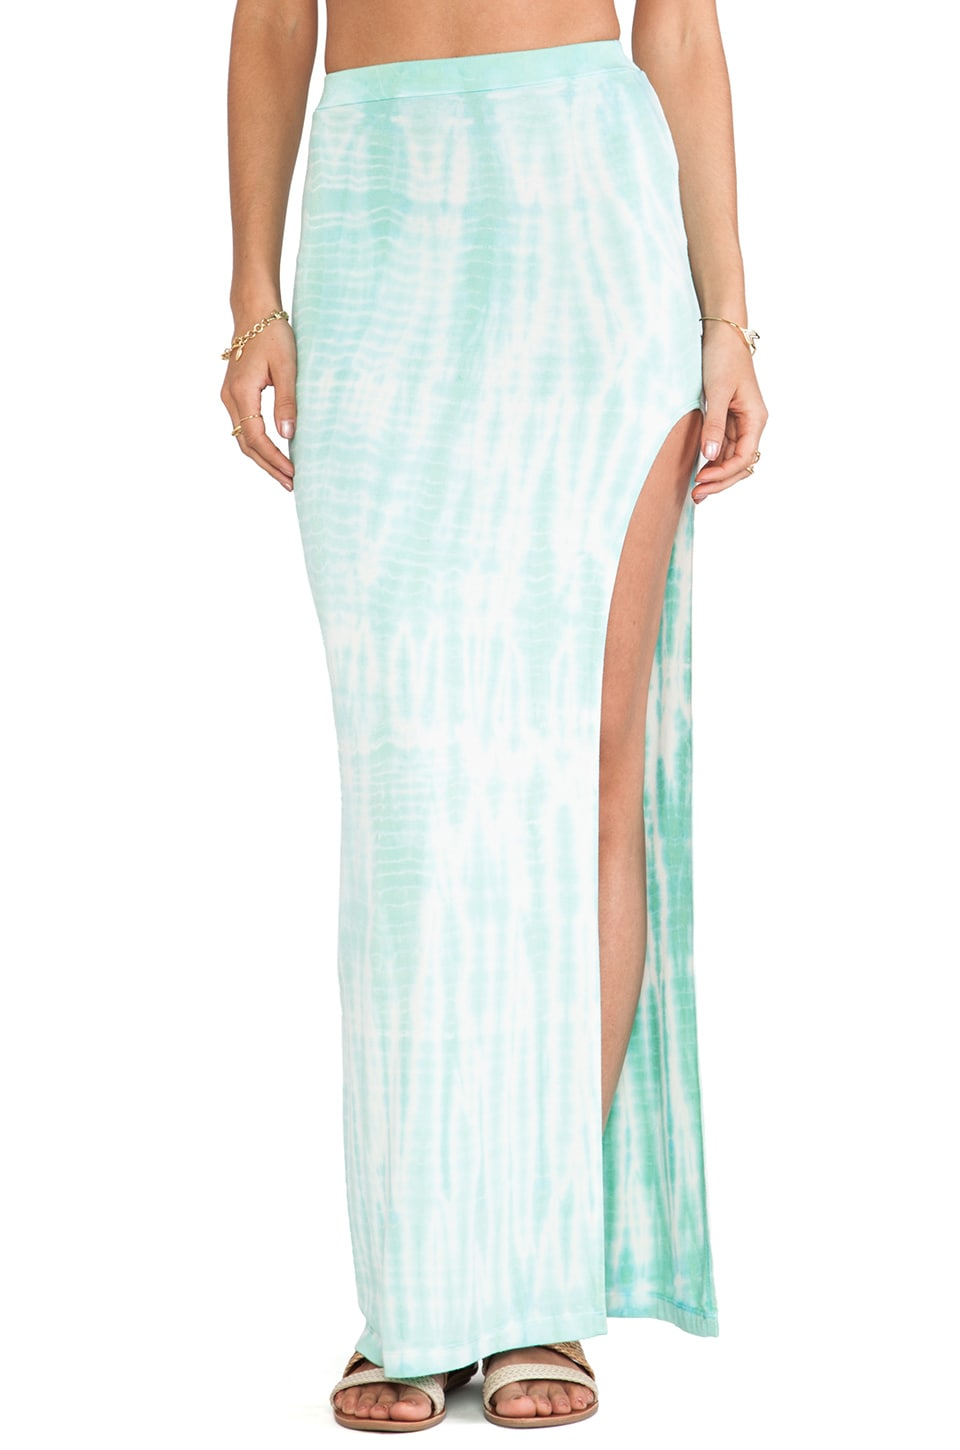 Stone Fox Swim Breeze Skirt in Salt